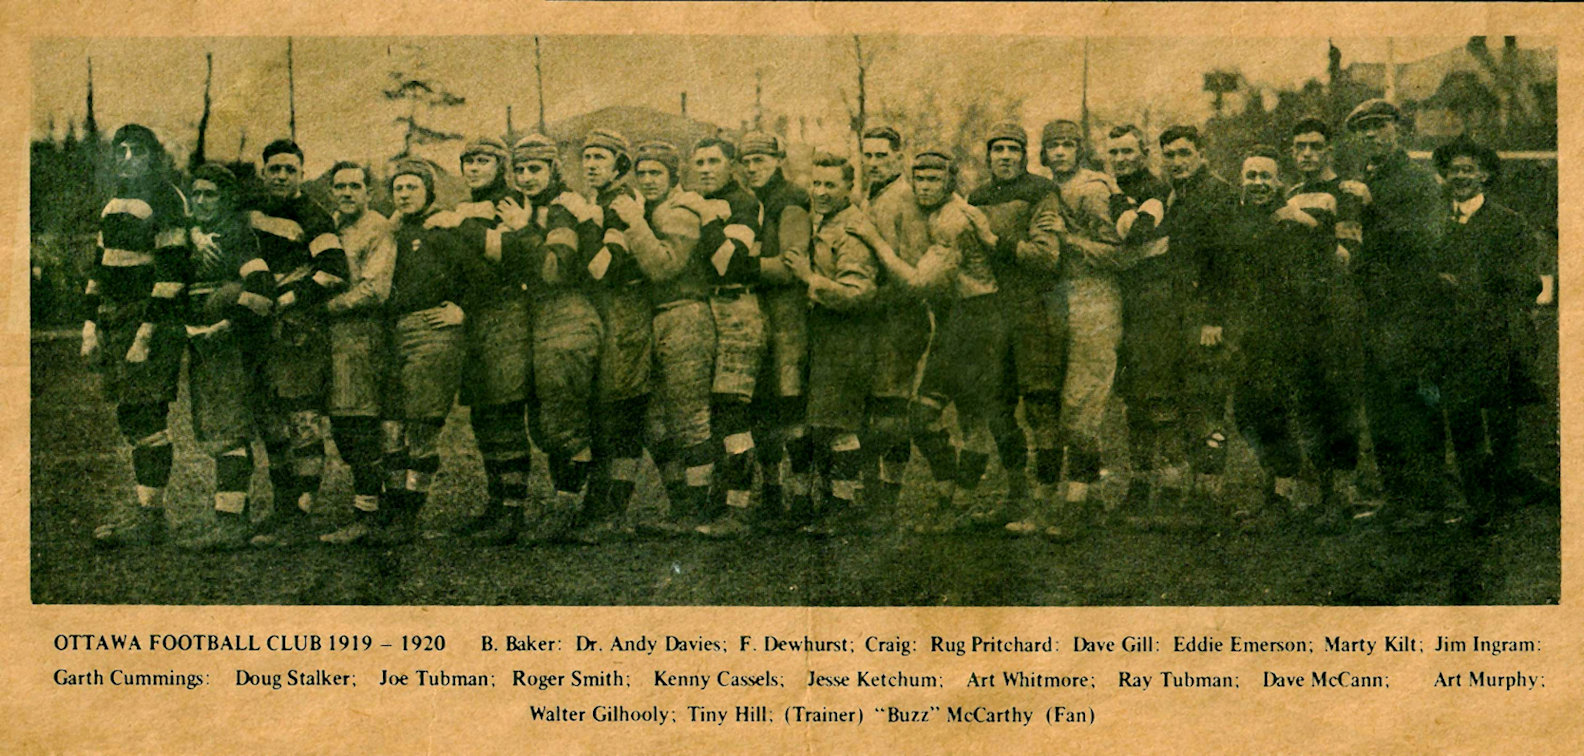 Ottawa Football Club, 1919-20